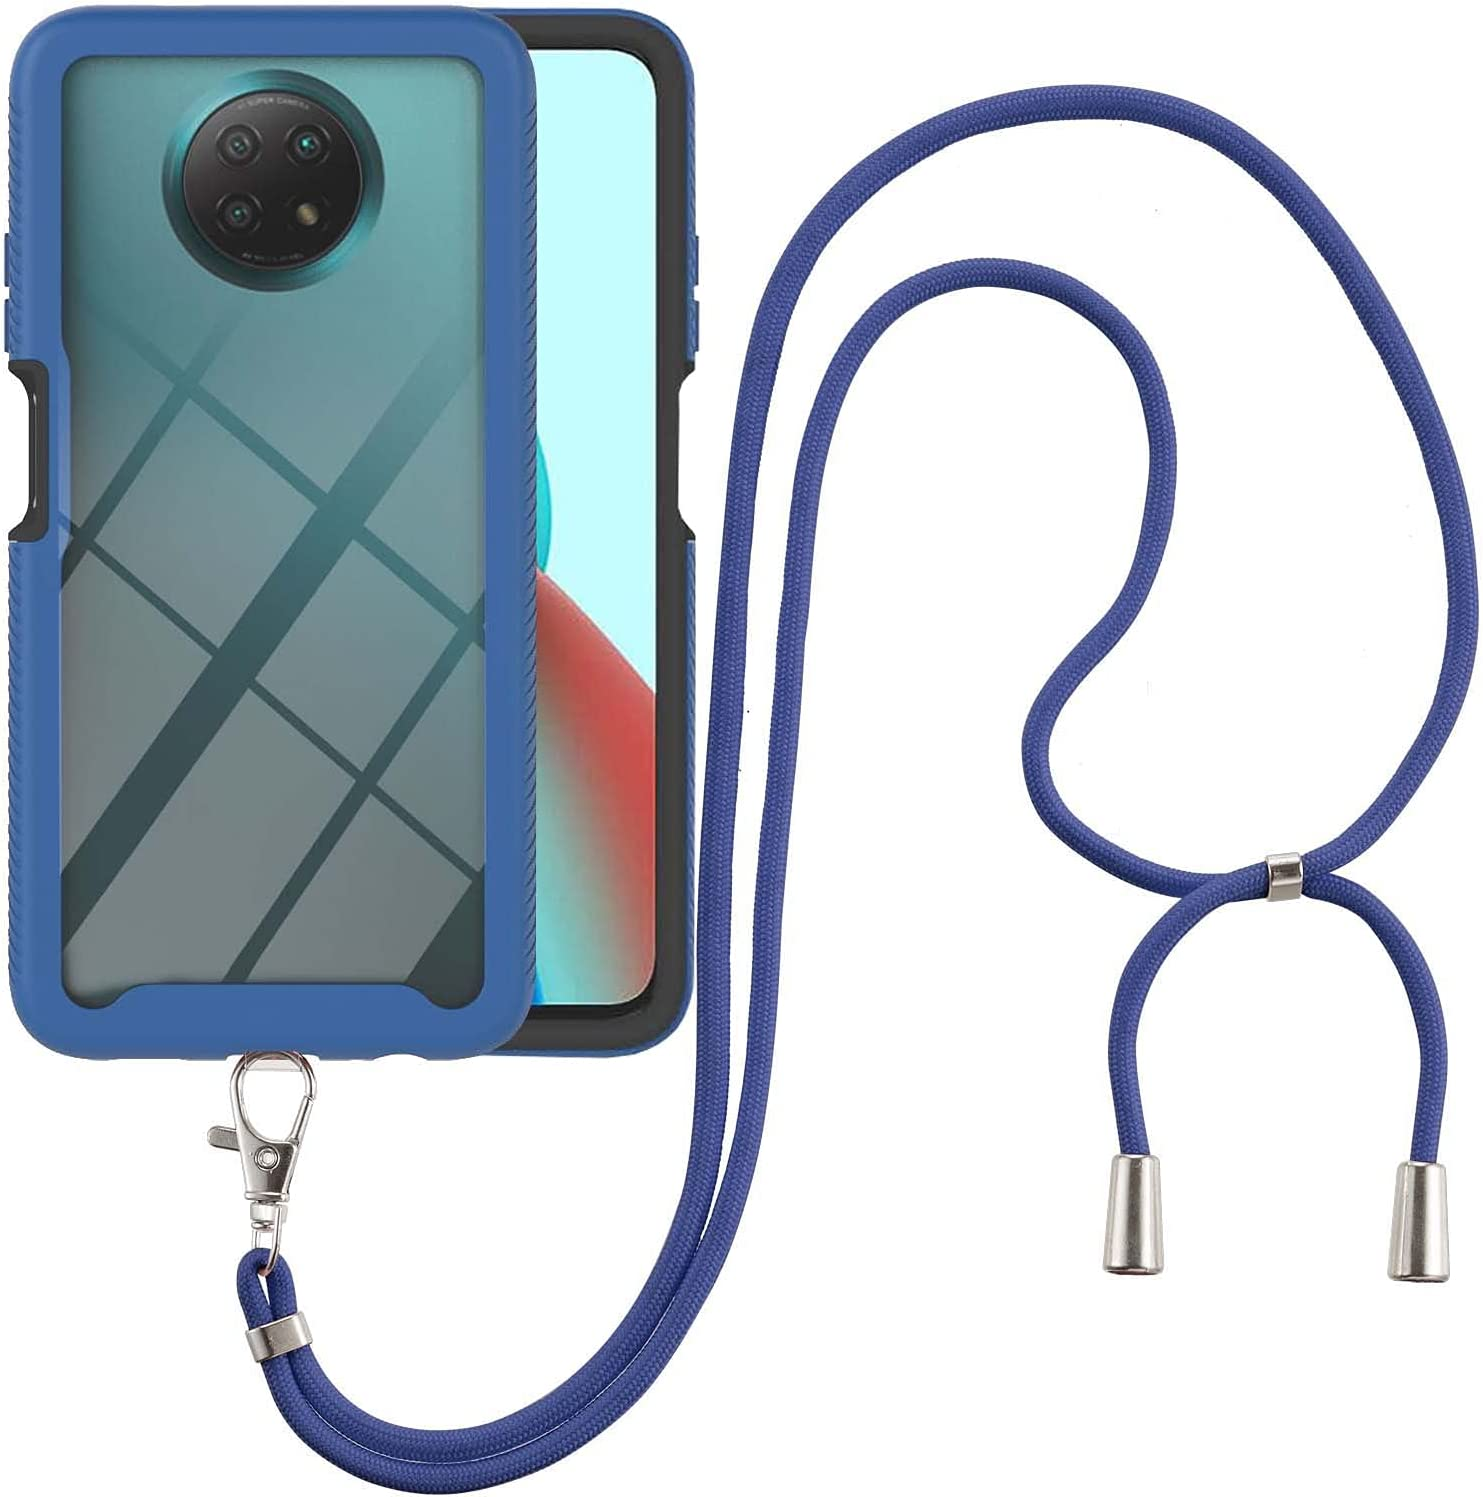 Redmi Note 9T Case, EabHulie Transparent Back No-Slip Bumper with Adjustable Crossbody Lanyard Strap Case, Shockproof Full Body Protection Cover for Xiaomi Redmi Note 9T Blue